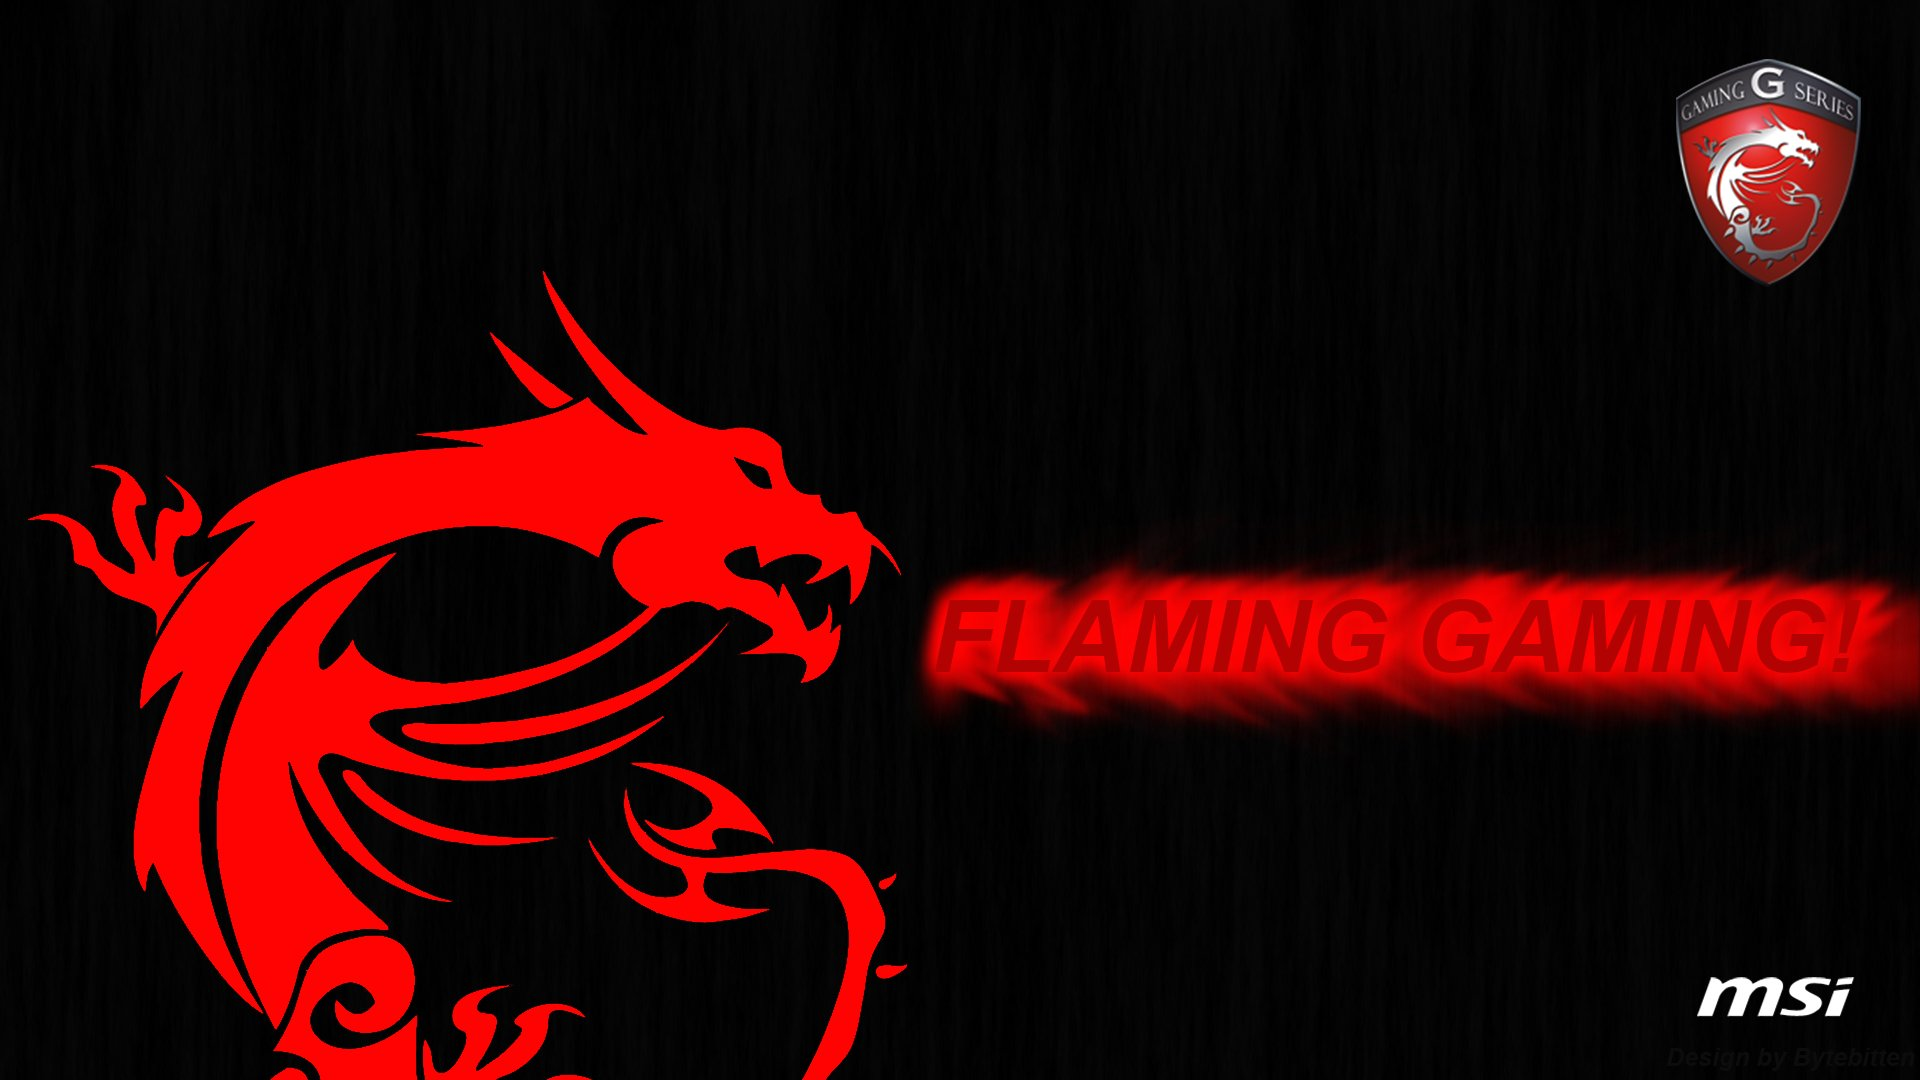 MSI 1366x768 HD Wallpaper - WallpaperSafari